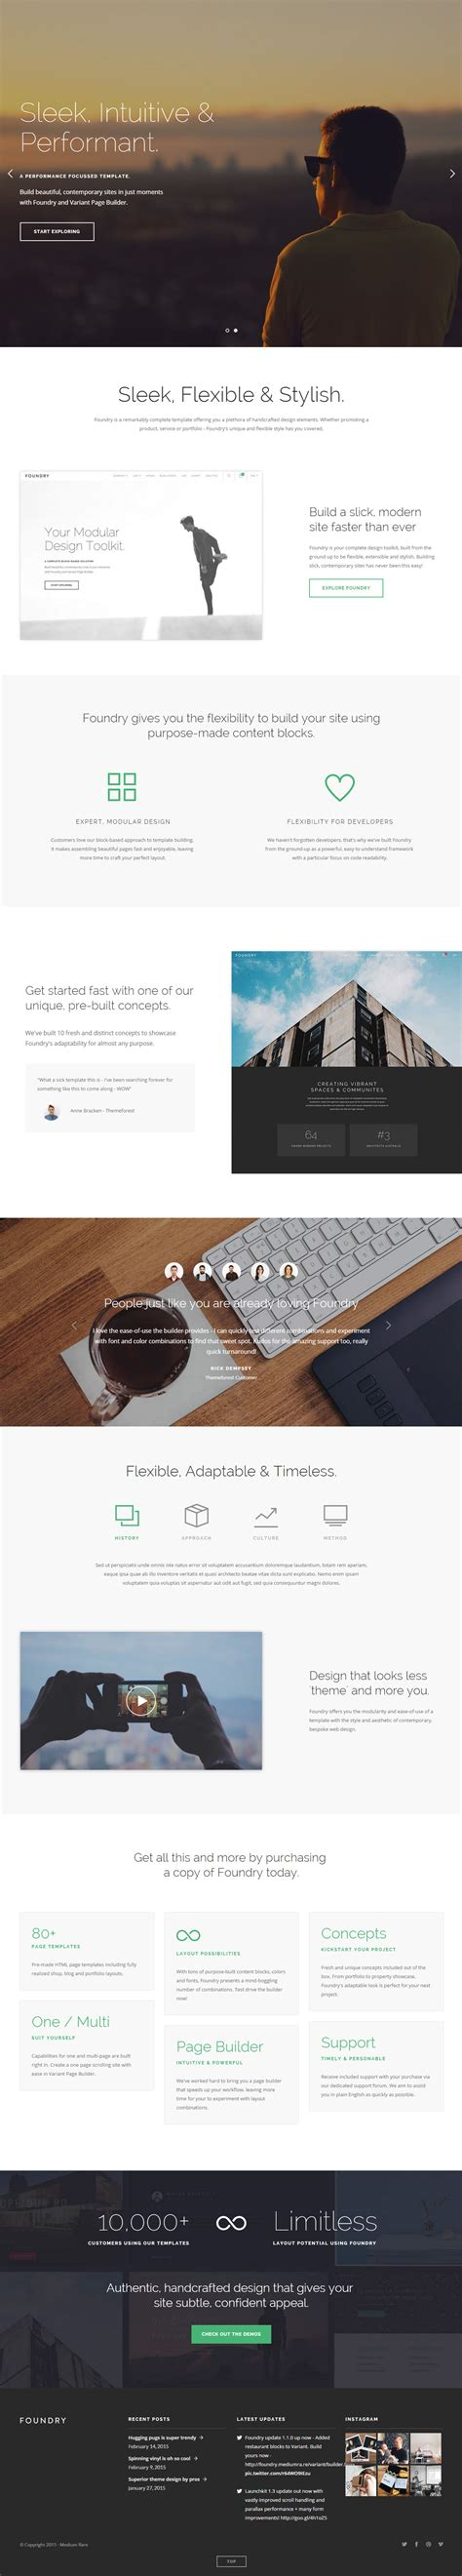 parallax website template 40 best responsive parallax scrolling website template